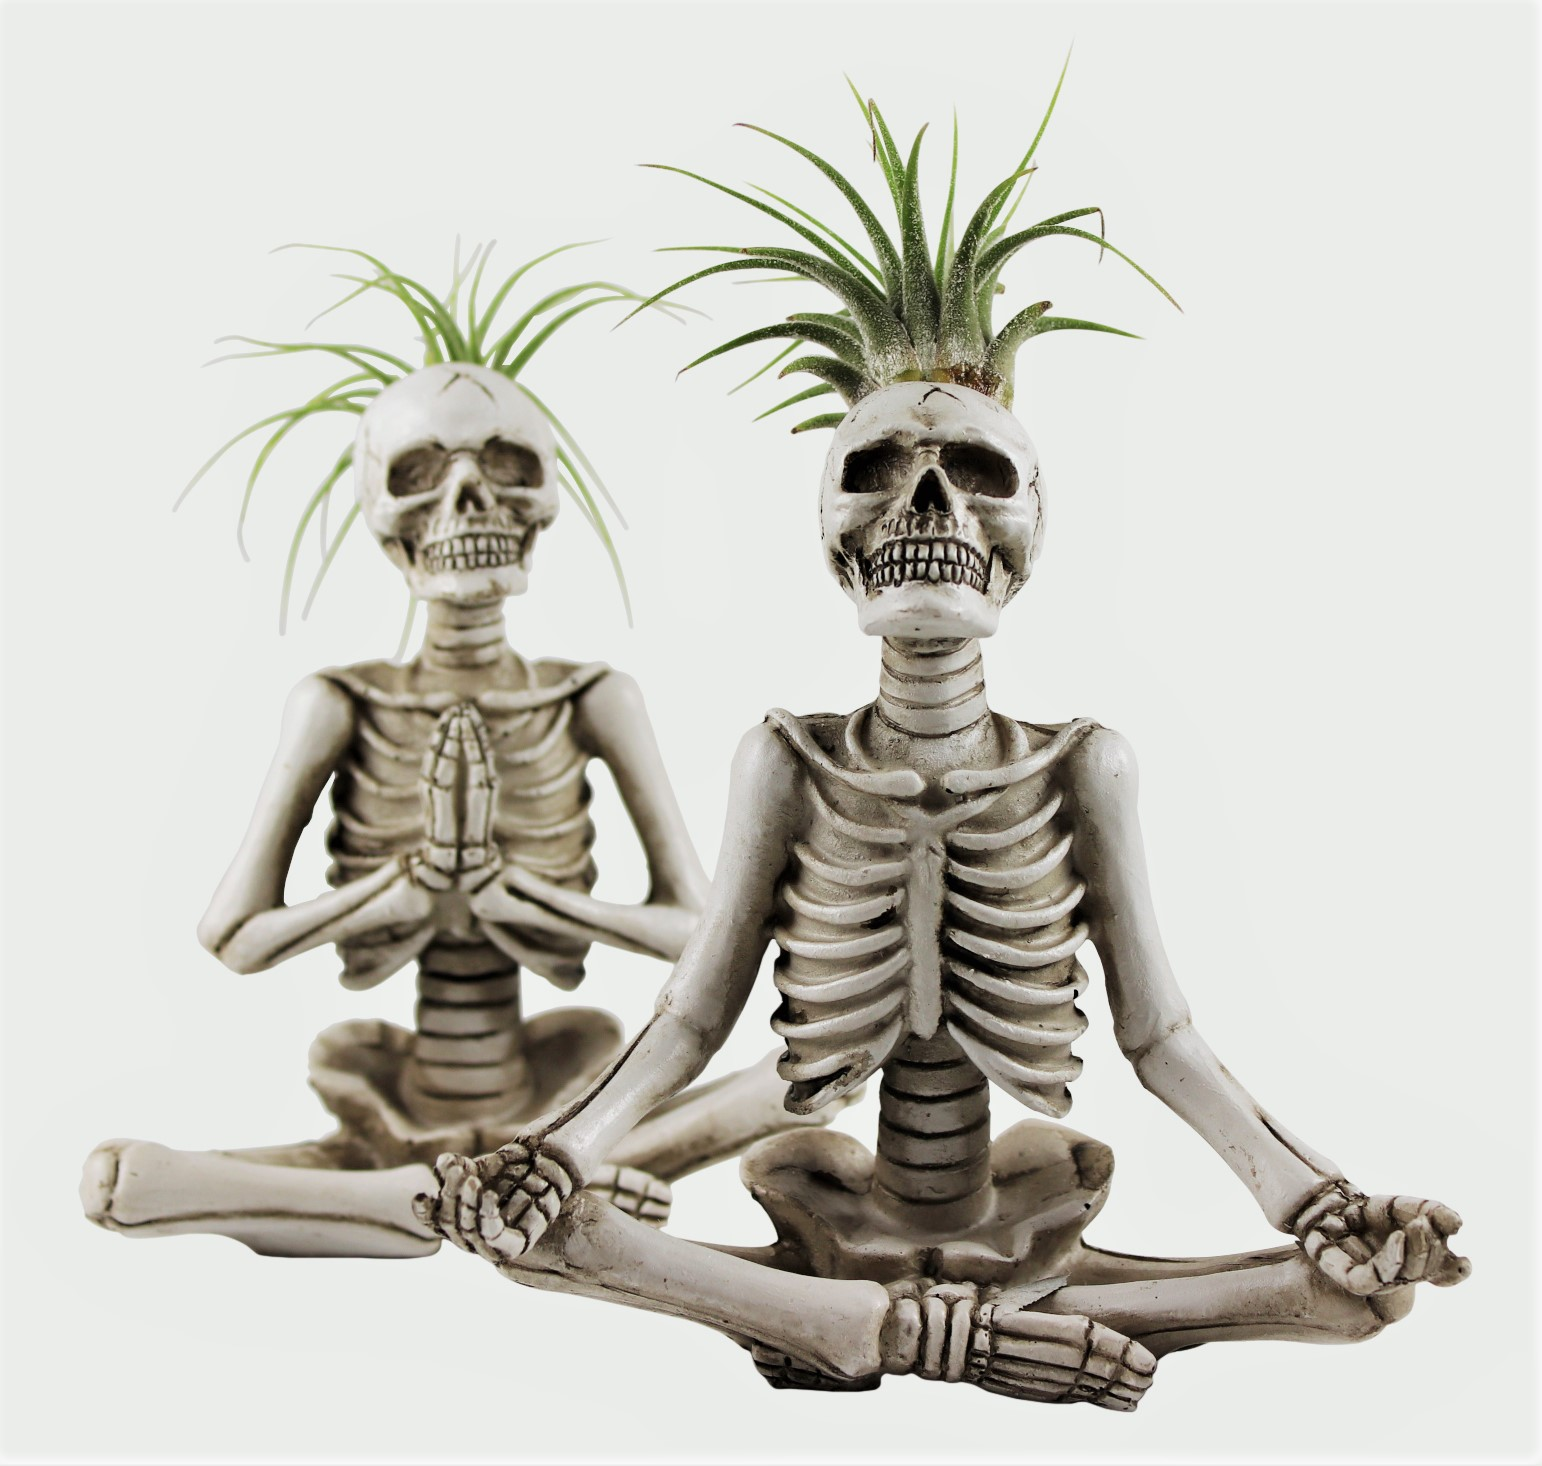 Trader Joe's New Yoga Skeleton Succulents Are This Year's Spookiest New Halloween Decoration